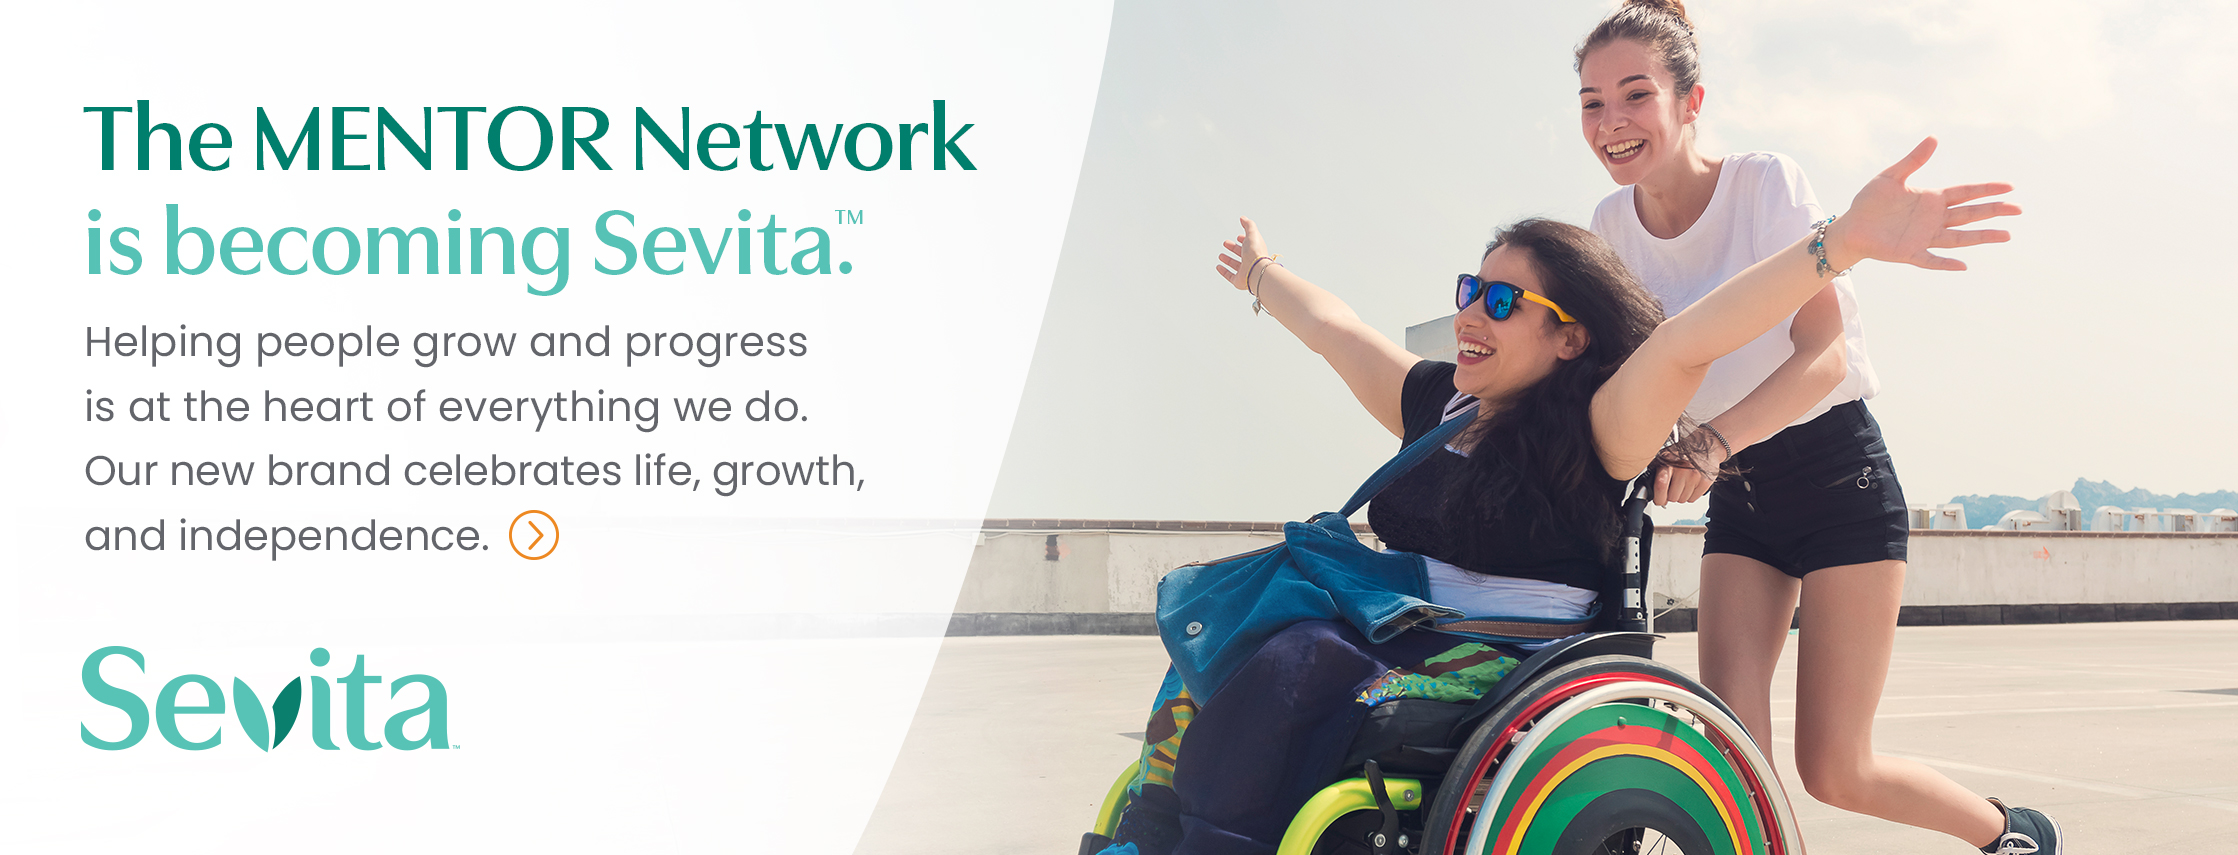 The MENTOR Network is becoming Sevita